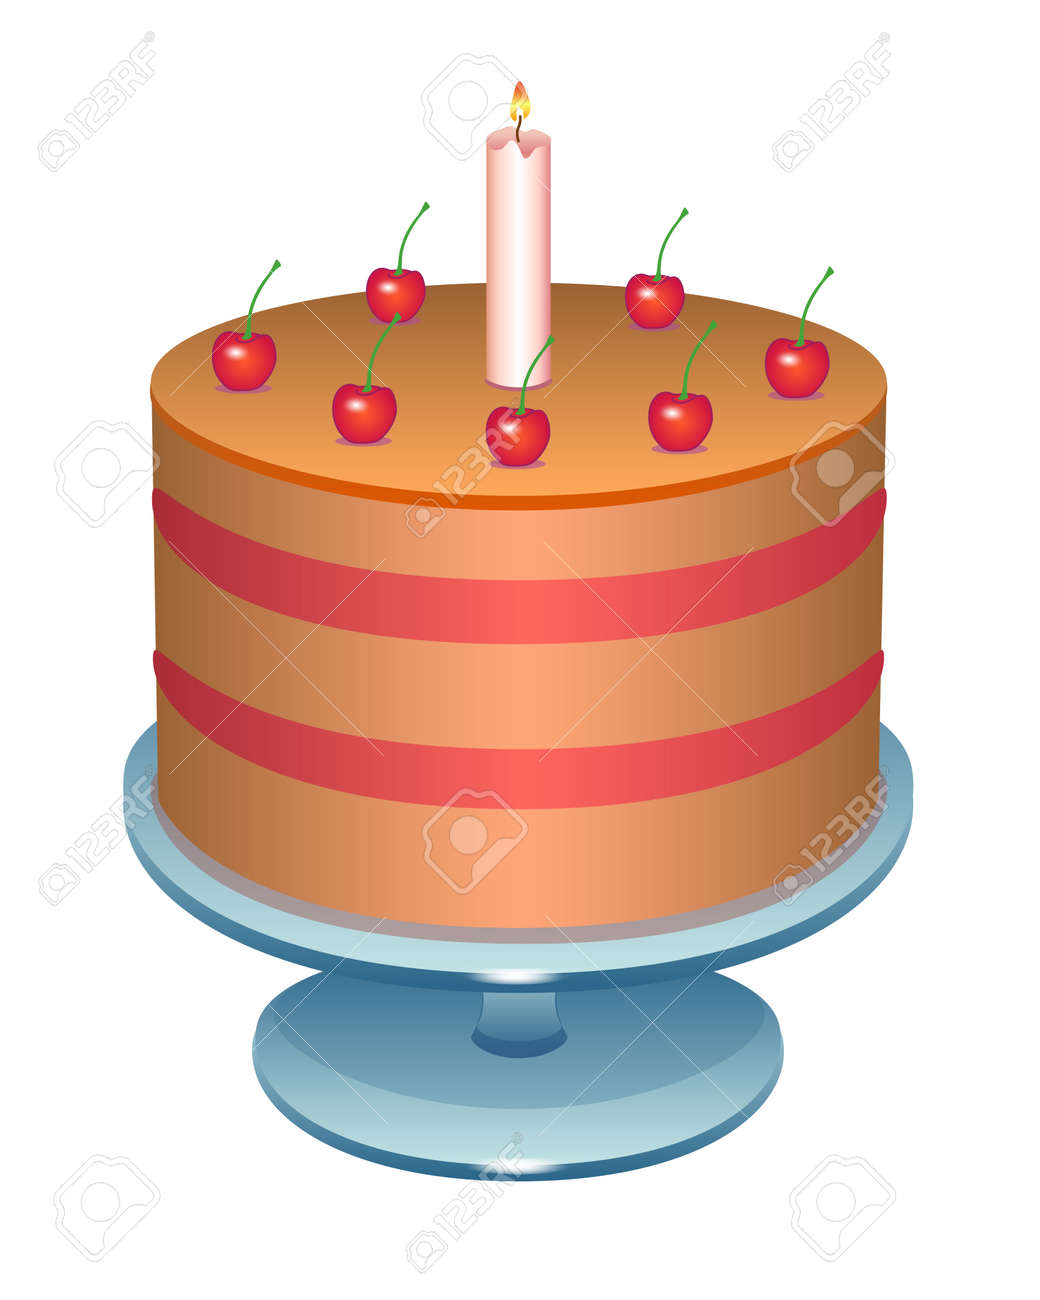 Cherry cake with a candle. Birthday cake on a stand - vector full color illustration. Puff cake decorated with cherries and candles - festive sweets. - 158322826